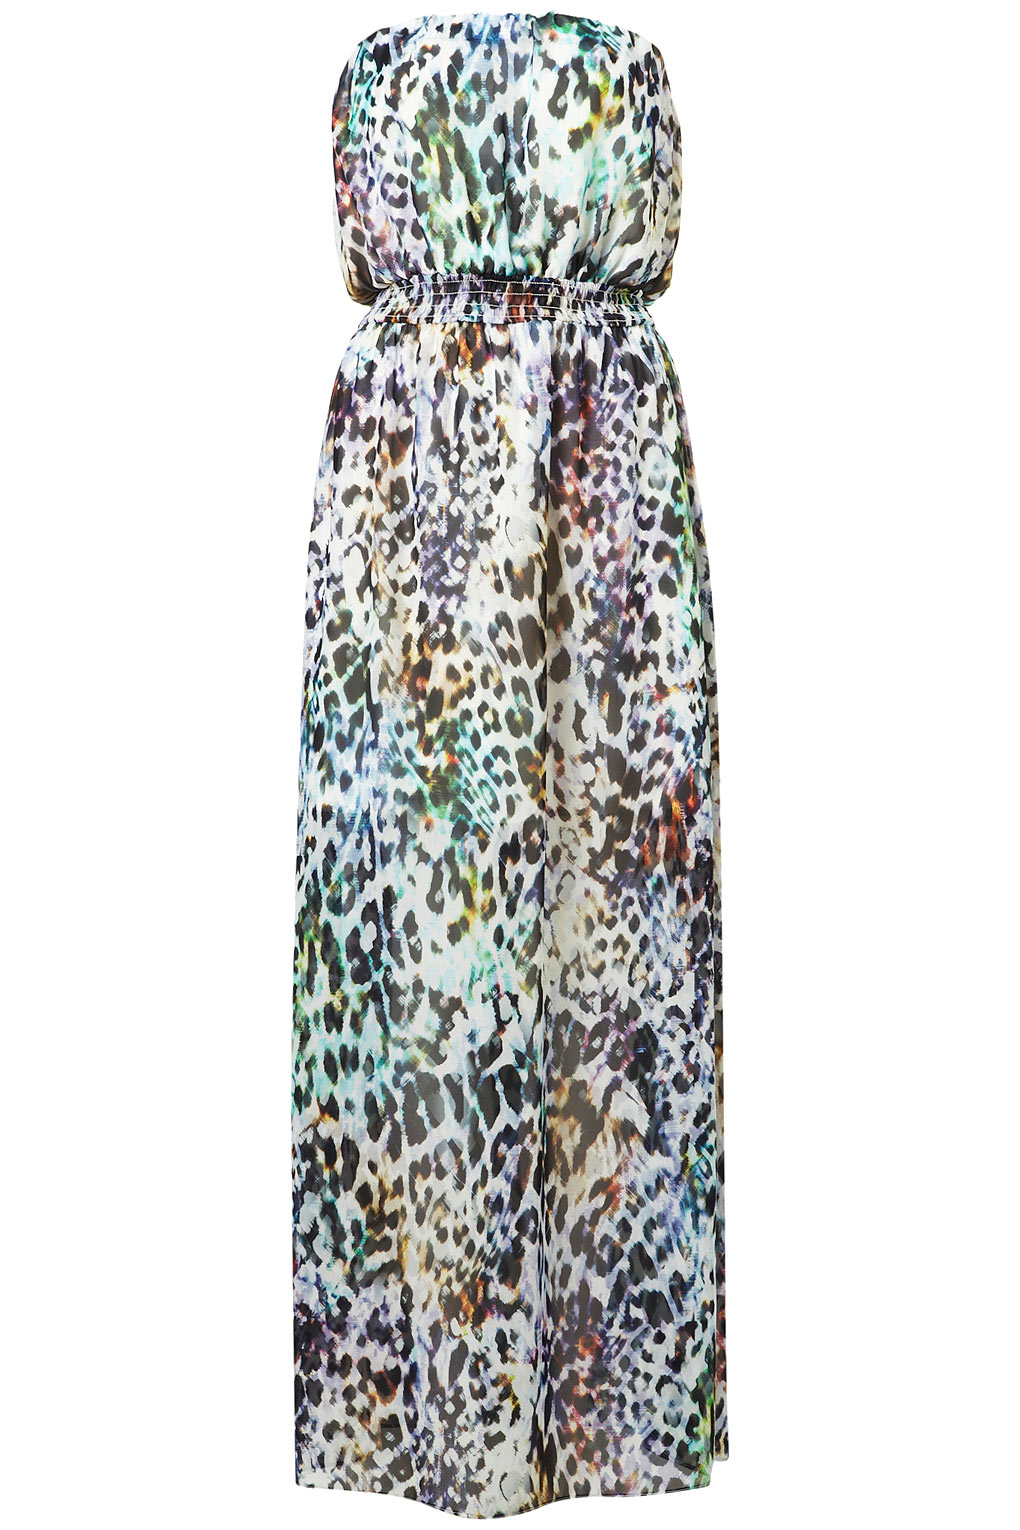 b2753c413b Lyst - TOPSHOP Animal Print Bandeau Maxi Dress